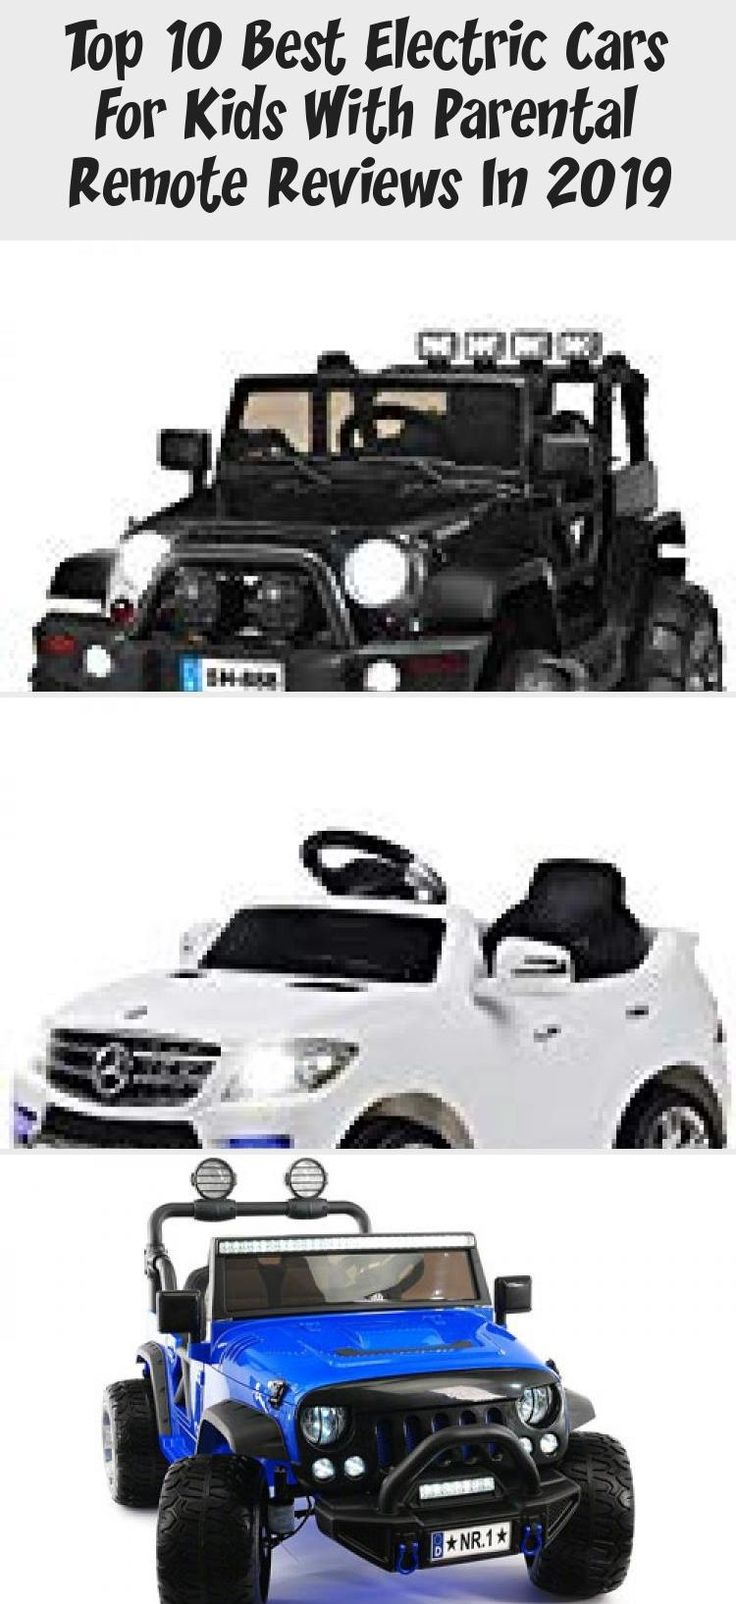 Top 10 Best Electric Cars For Kids With Parental Remote